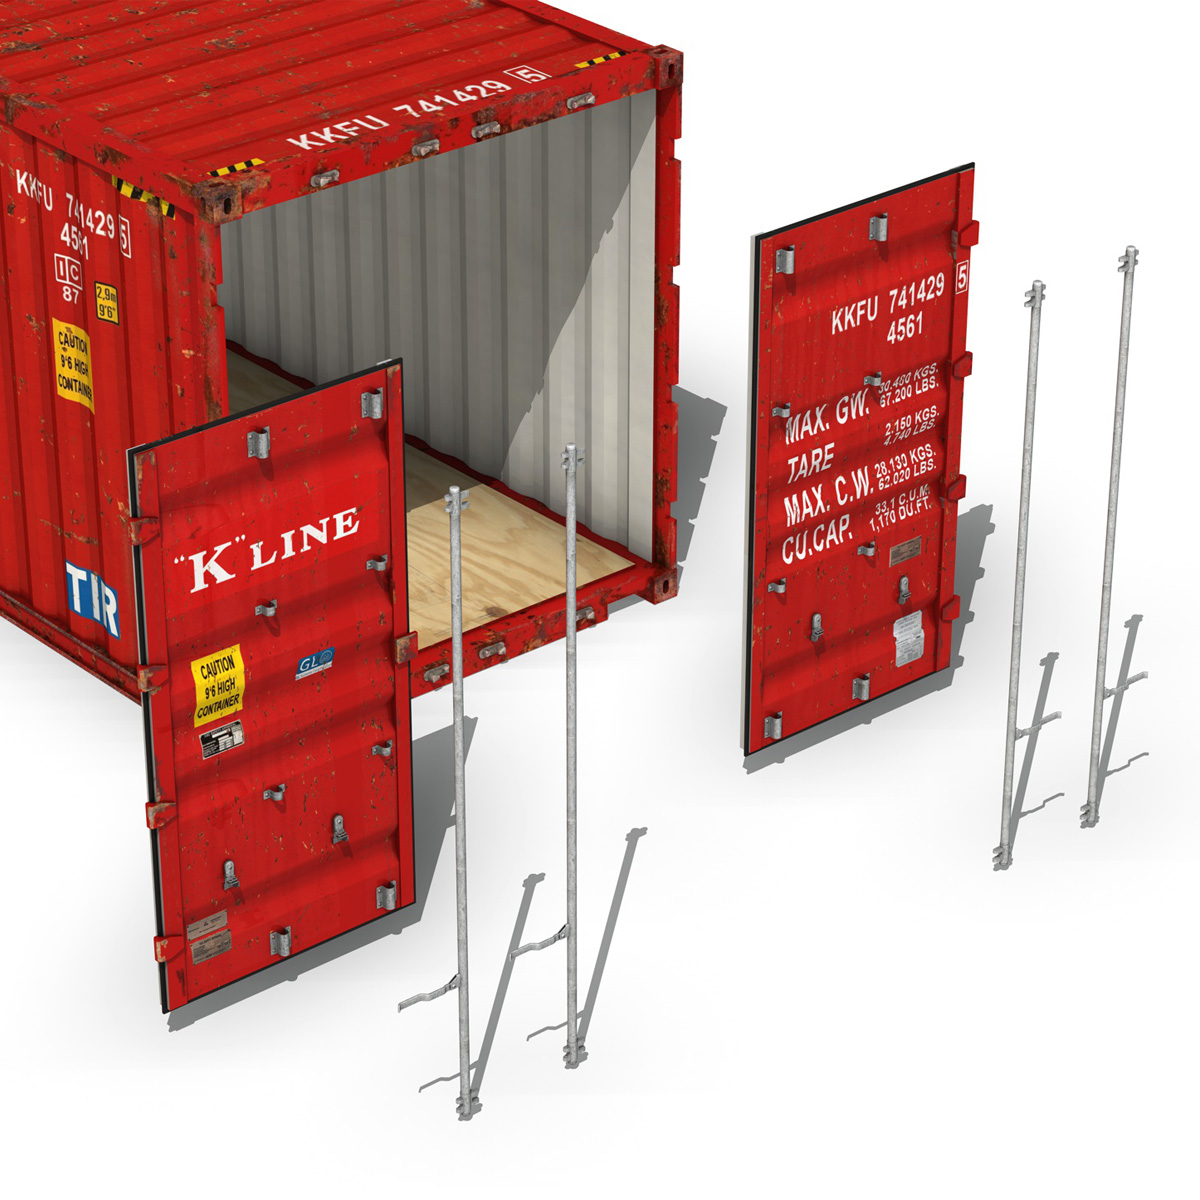 40ft shipping container – k line 3d model 3ds fbx lwo lw lws obj c4d 265123